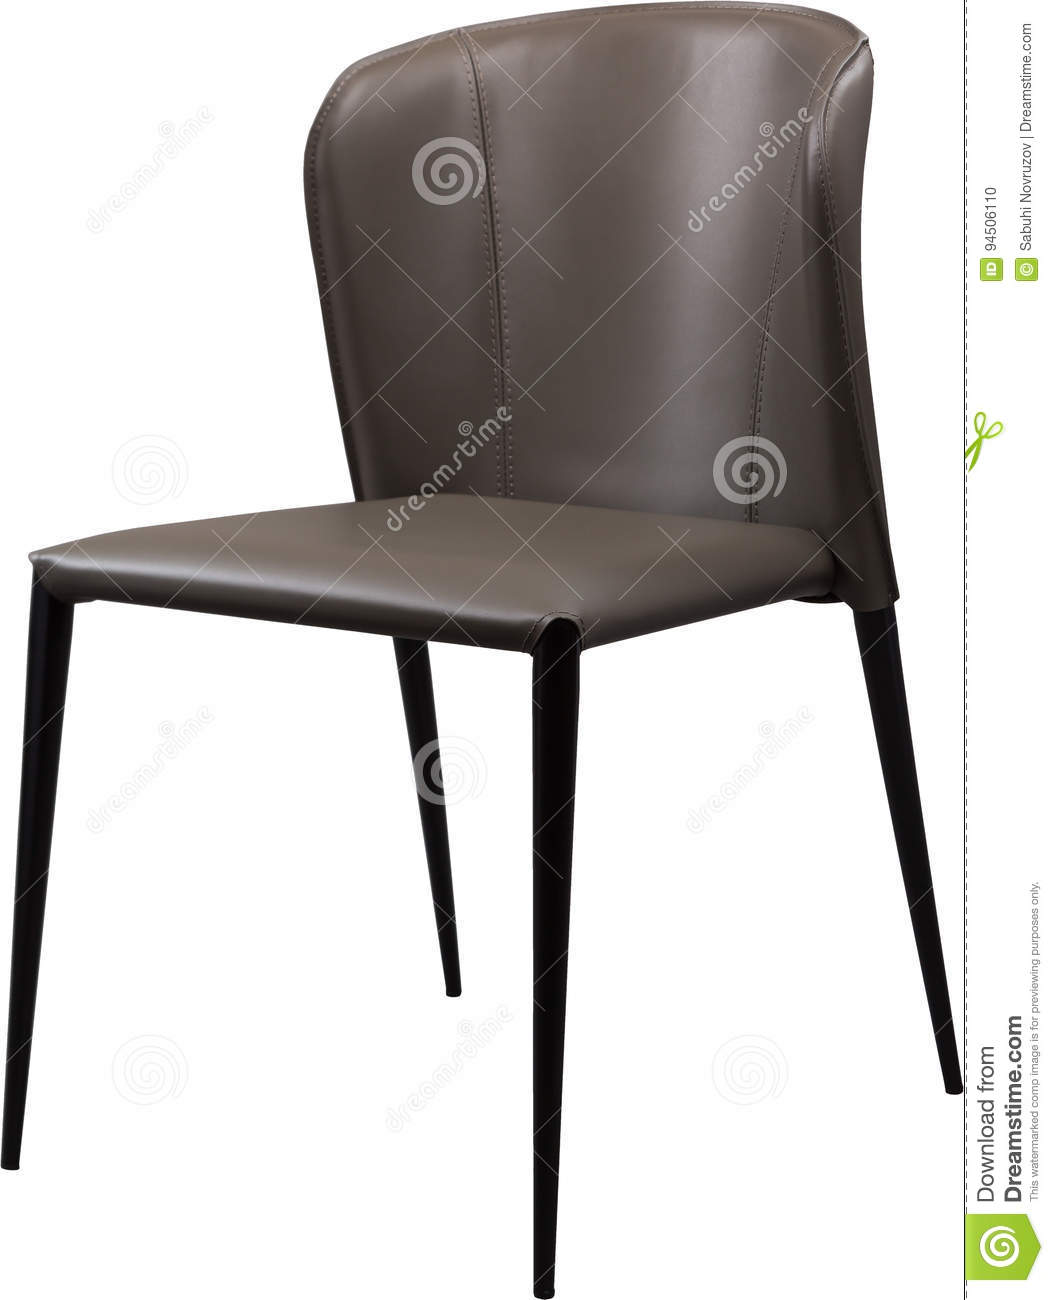 Amazing Coffee Colored Office Leather Chair Modern Designer Chair Ibusinesslaw Wood Chair Design Ideas Ibusinesslaworg